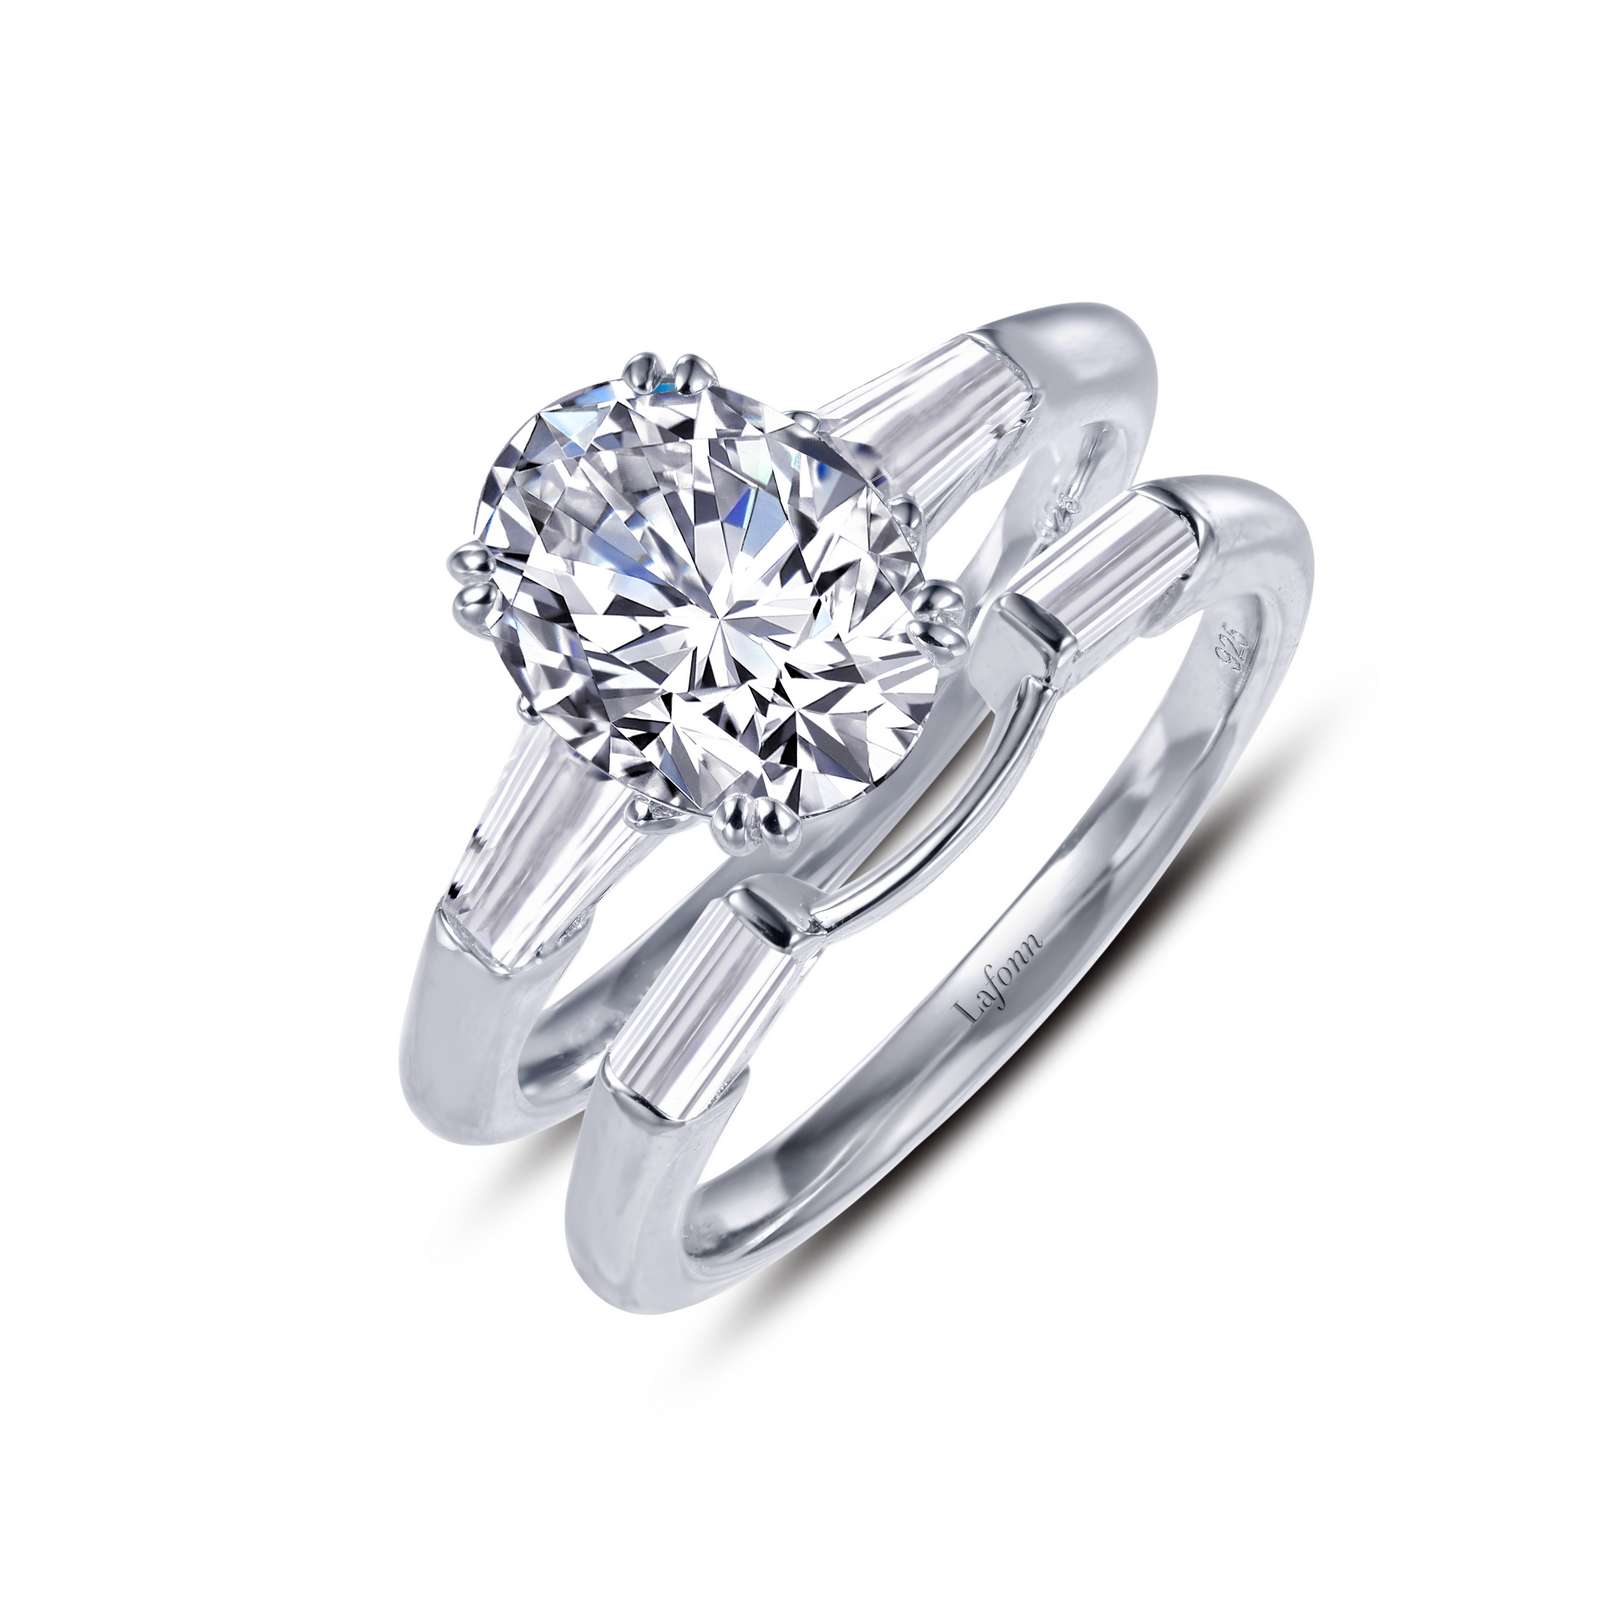 Classic Simulated Diamond Platinum Ring - A classic engagement ring with matching band. The stunning engagement ring features an oval Lafonn Lassaire simulated diamond in the center with a single tapered baguette on each side. This wedding set is set in sterling silver bonded with platinum.